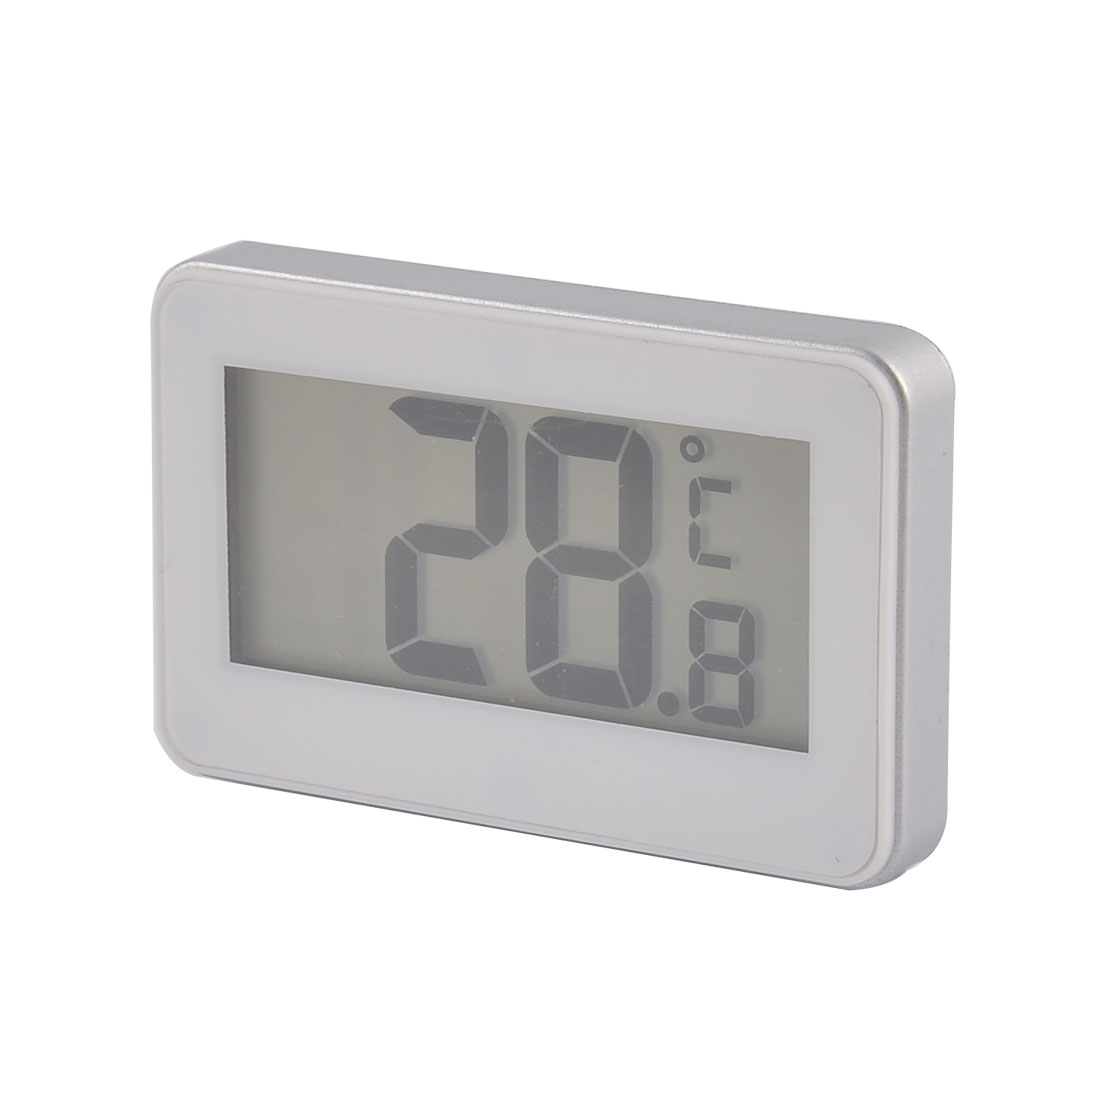 Electronic Frost Alarm Water Proof Fridge Temperature Freezer Thermometer